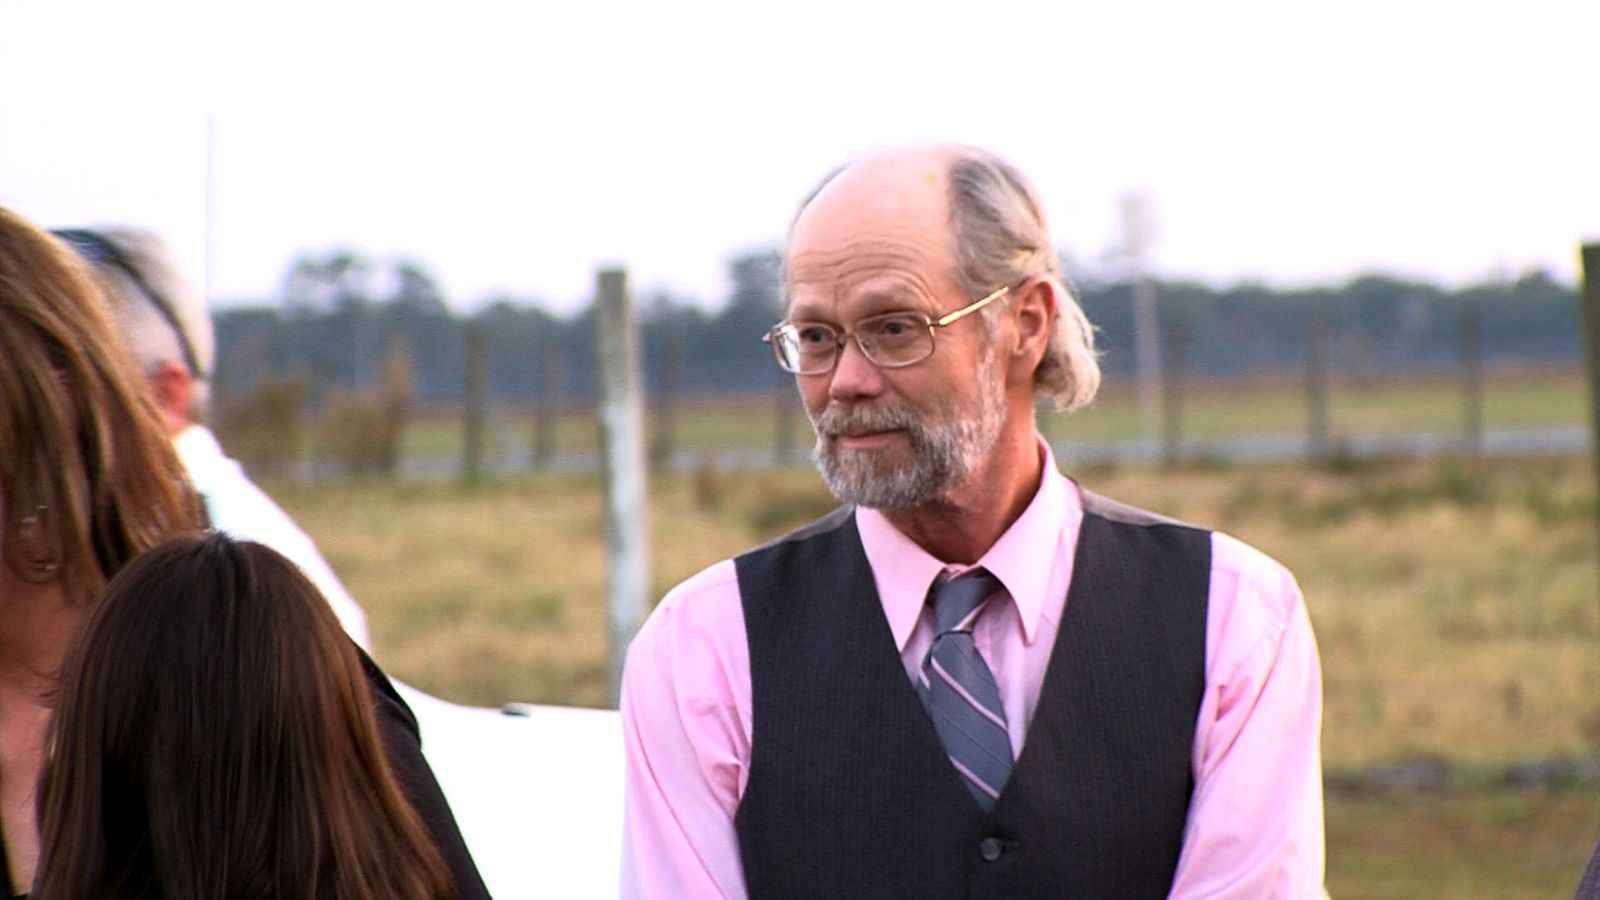 Hal Rogers stands outside Florida State Prison near Starke while his niece addresses the media after the Nov. 15, 2011 execution of Oba Chandler, the man who killed Rogers' wife and two daughters more than two decades earlier. [Photo courtesy of GTN News]